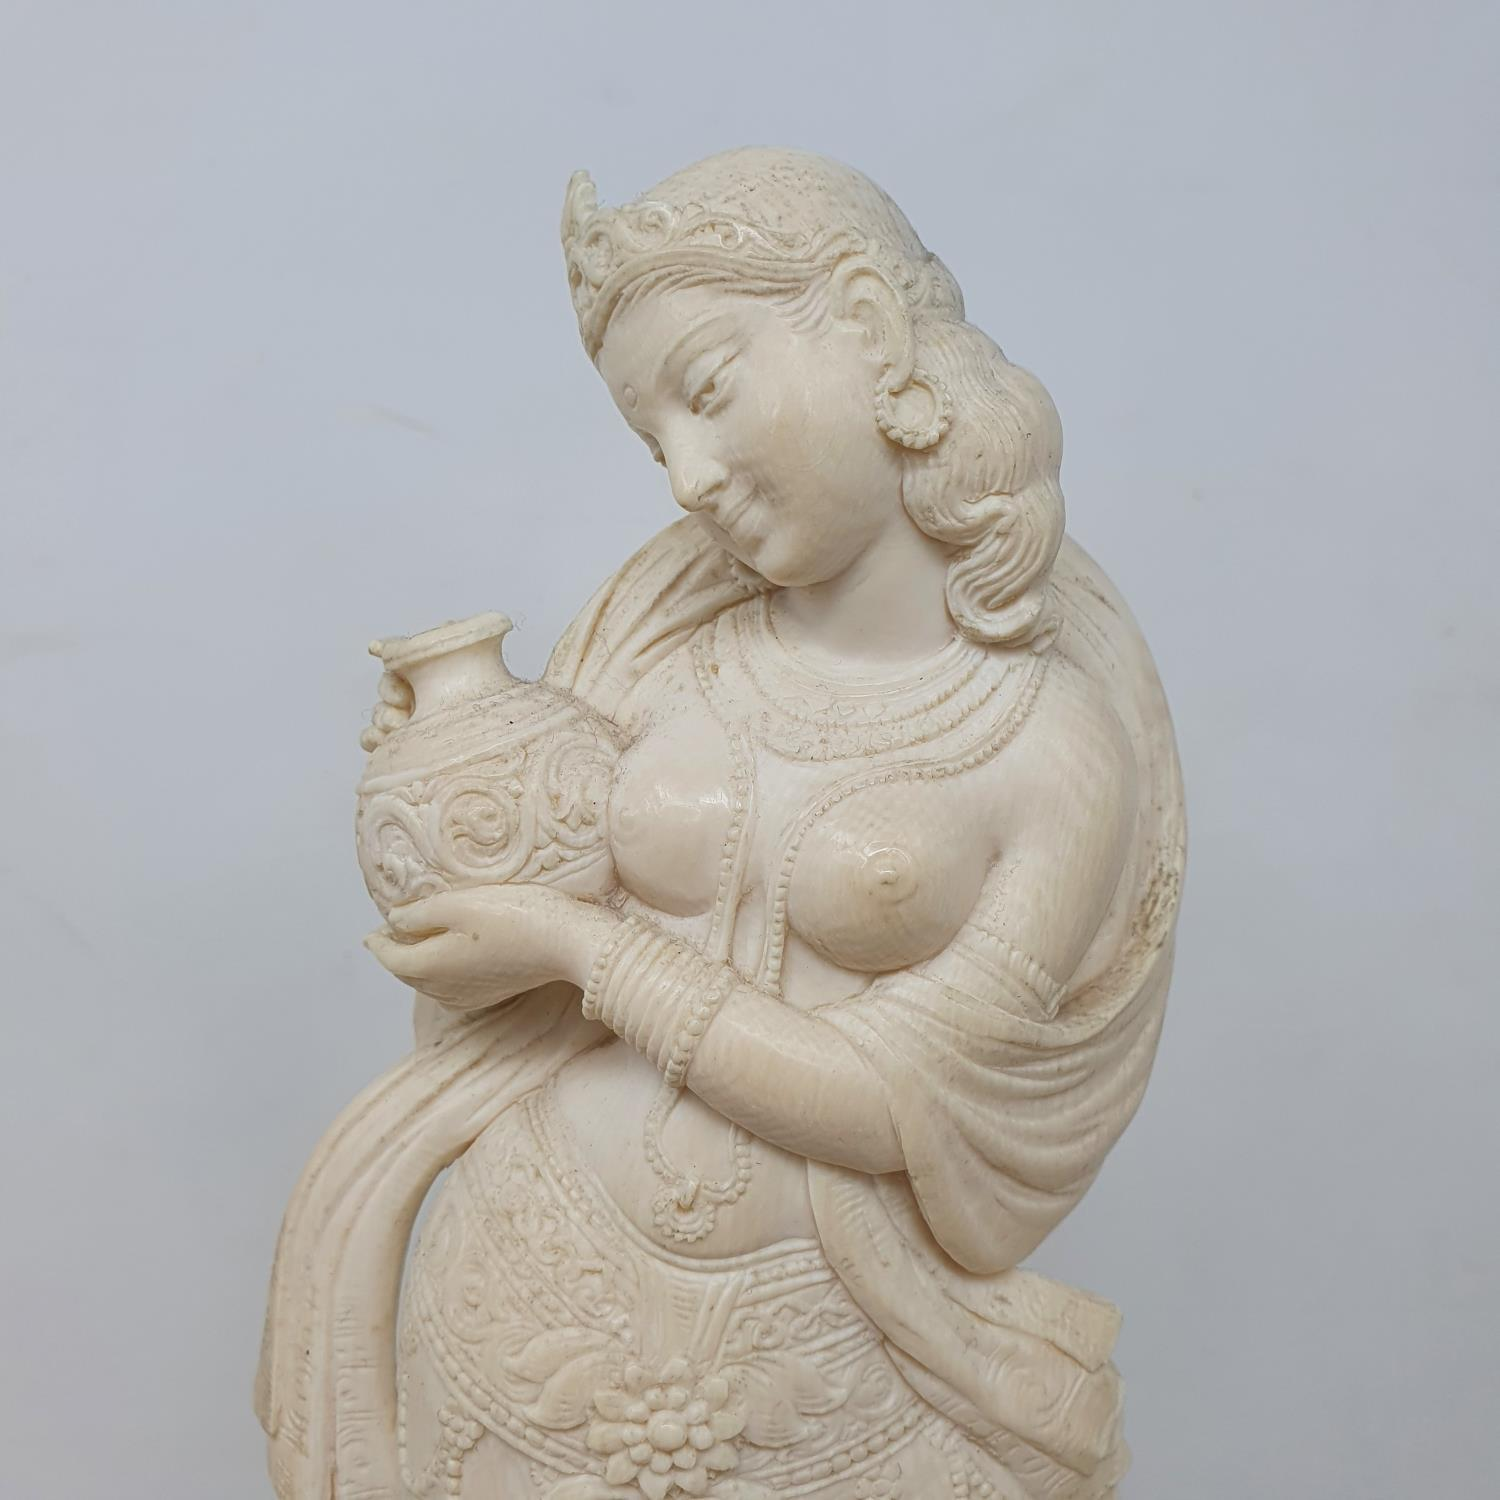 An early 20th century Indian carved ivory figure, of a woman holding a vase, on a wooden base, 28 cm - Image 4 of 4